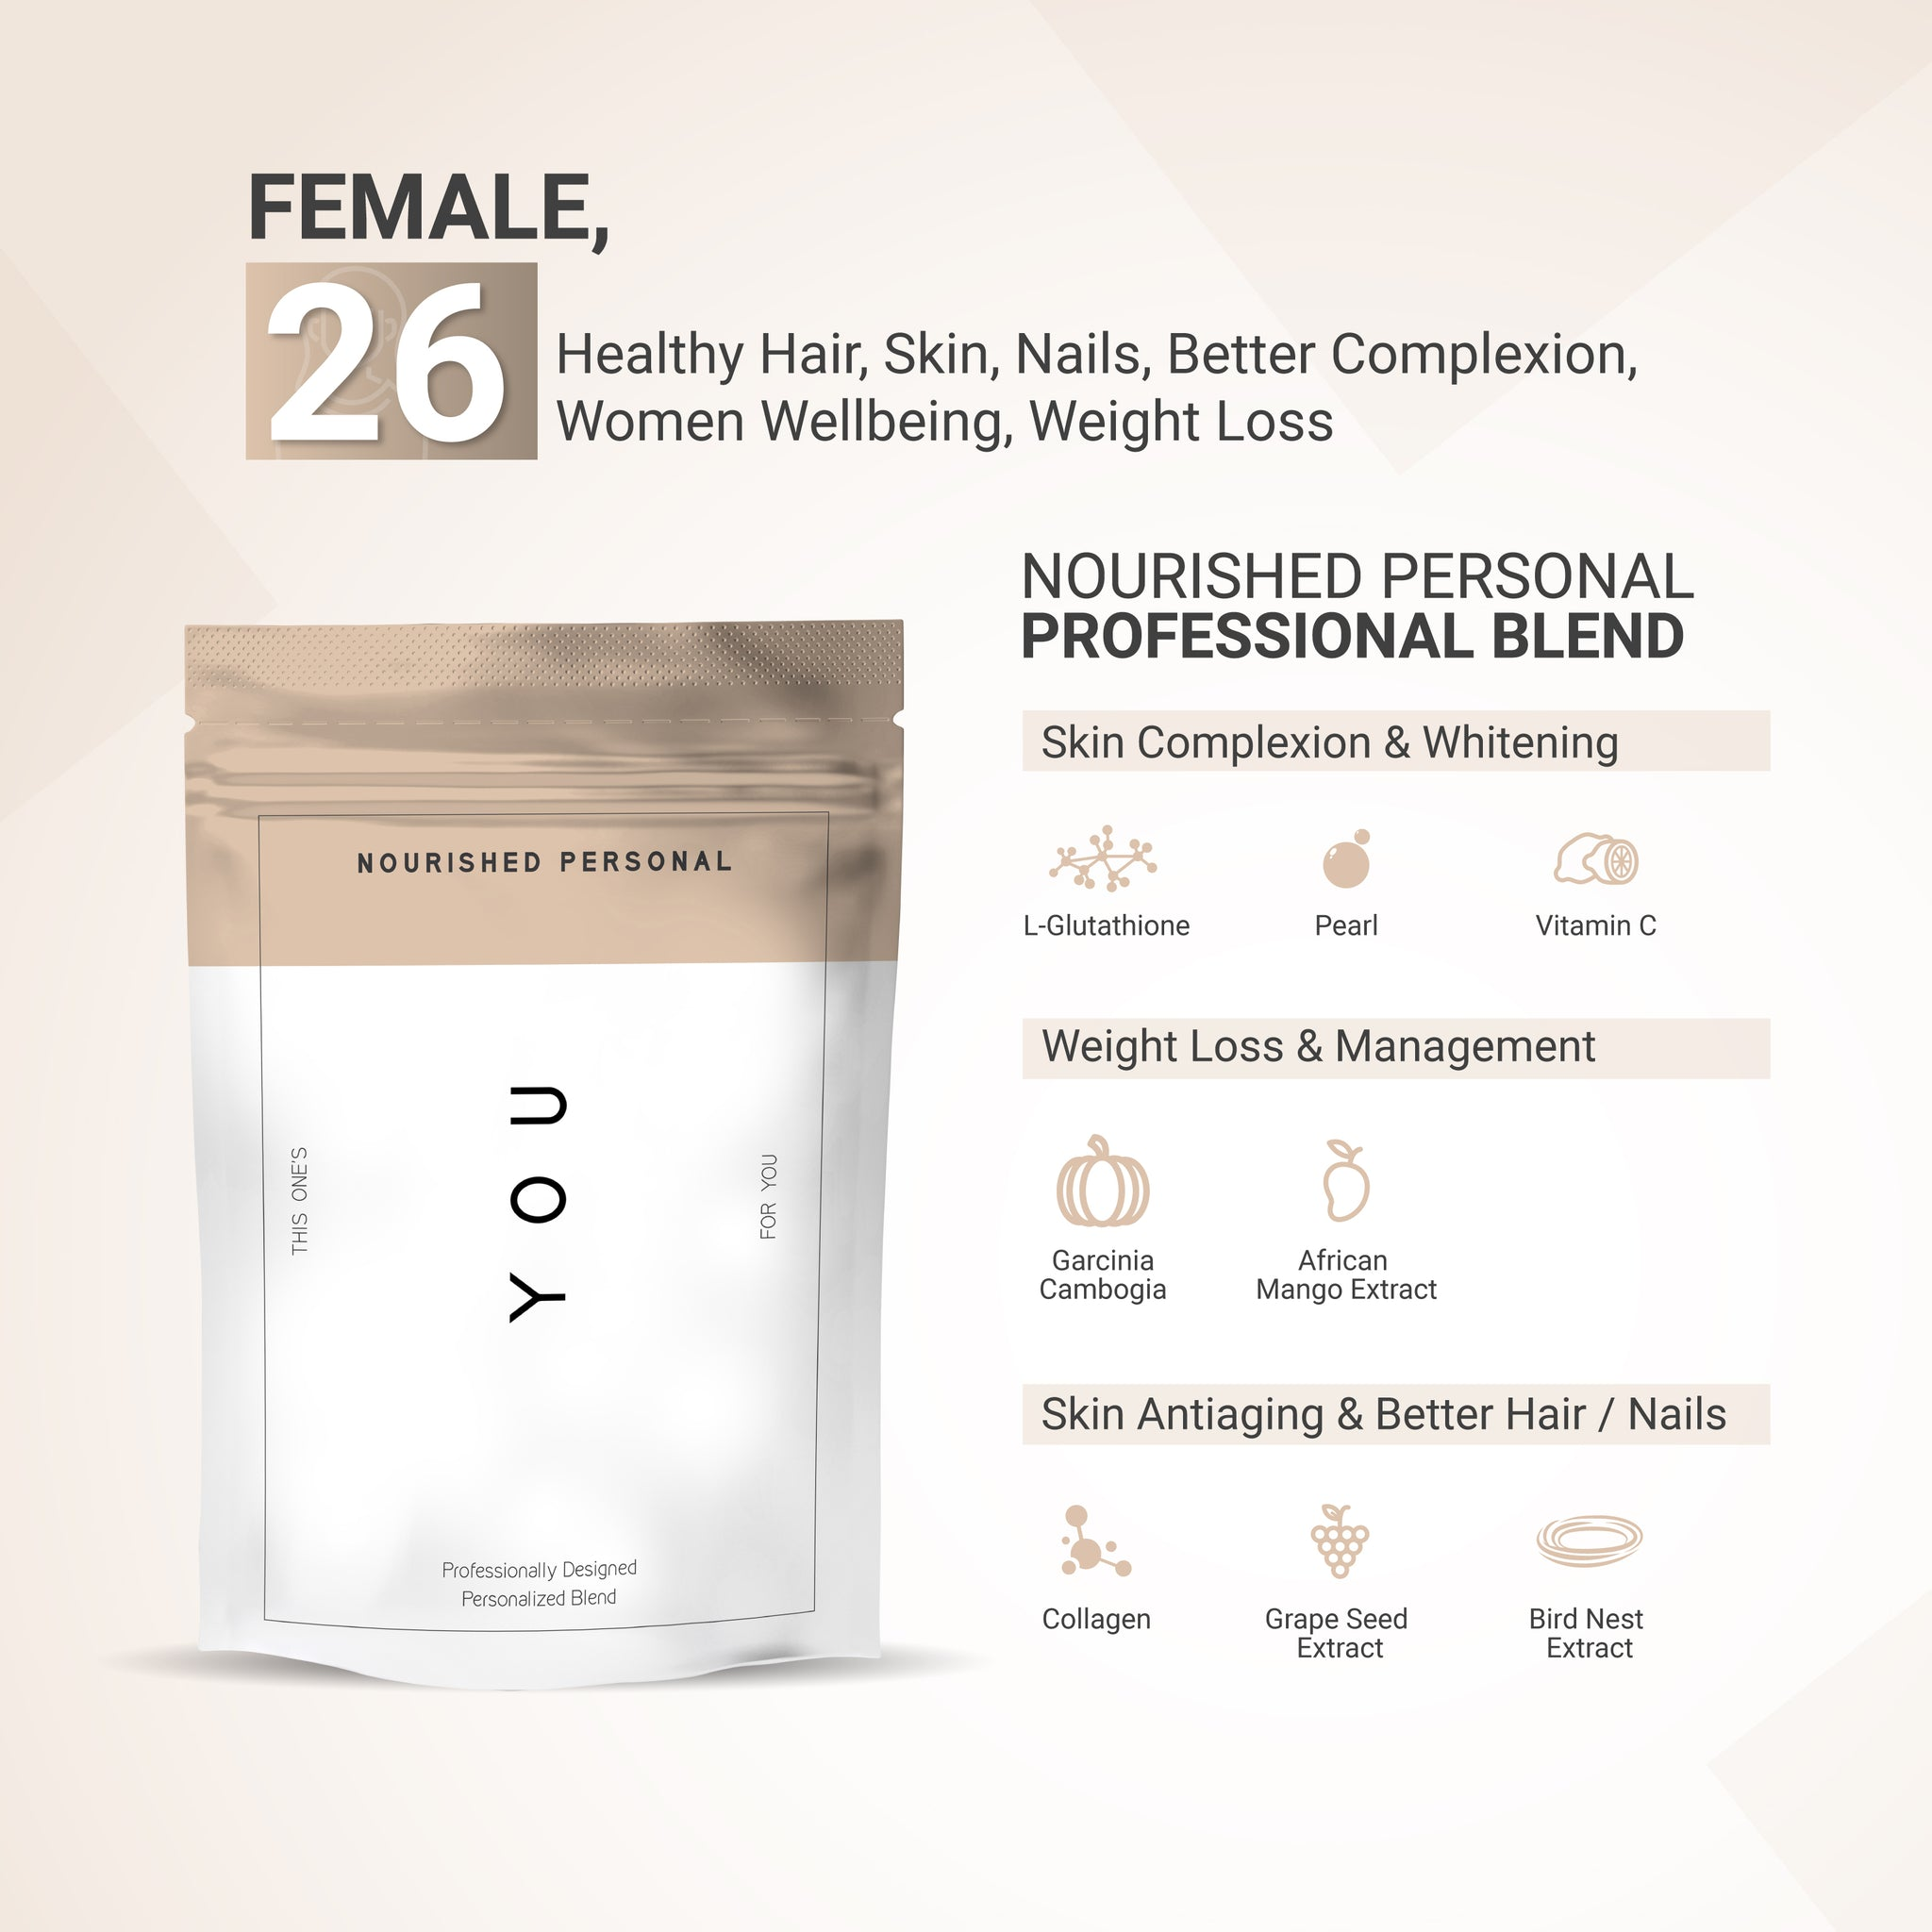 Case Study 3: Female, 26 - Skin Complexion, Weight Management, Skin Antiaging